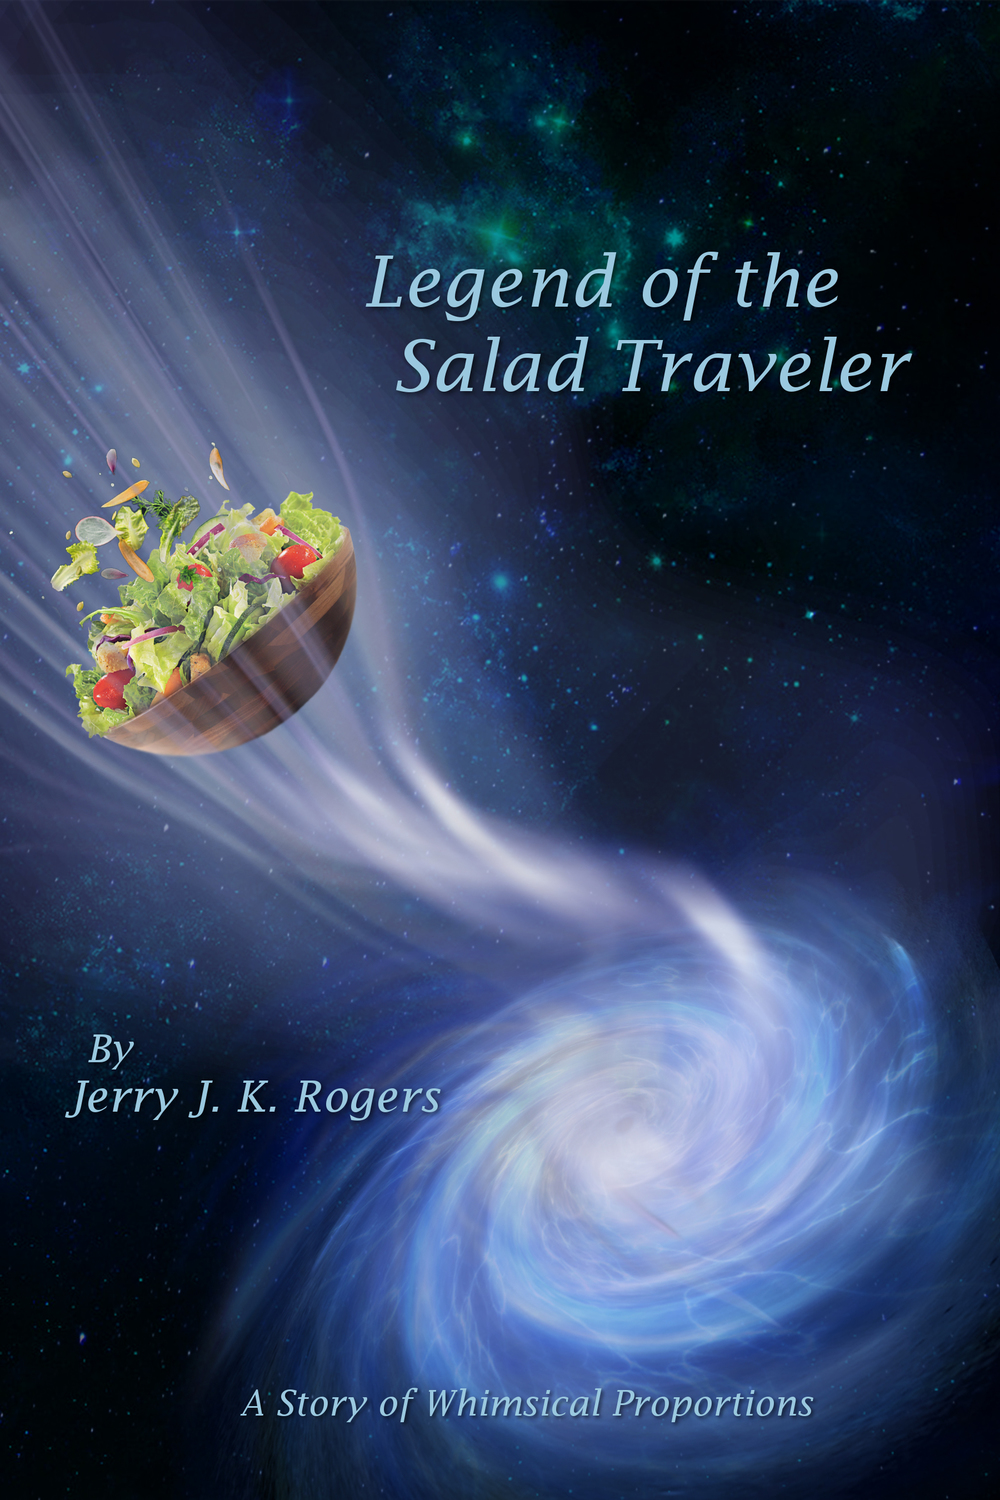 Legend of the Salad Traveler Cover Art (Design created by Christian Vazquez)